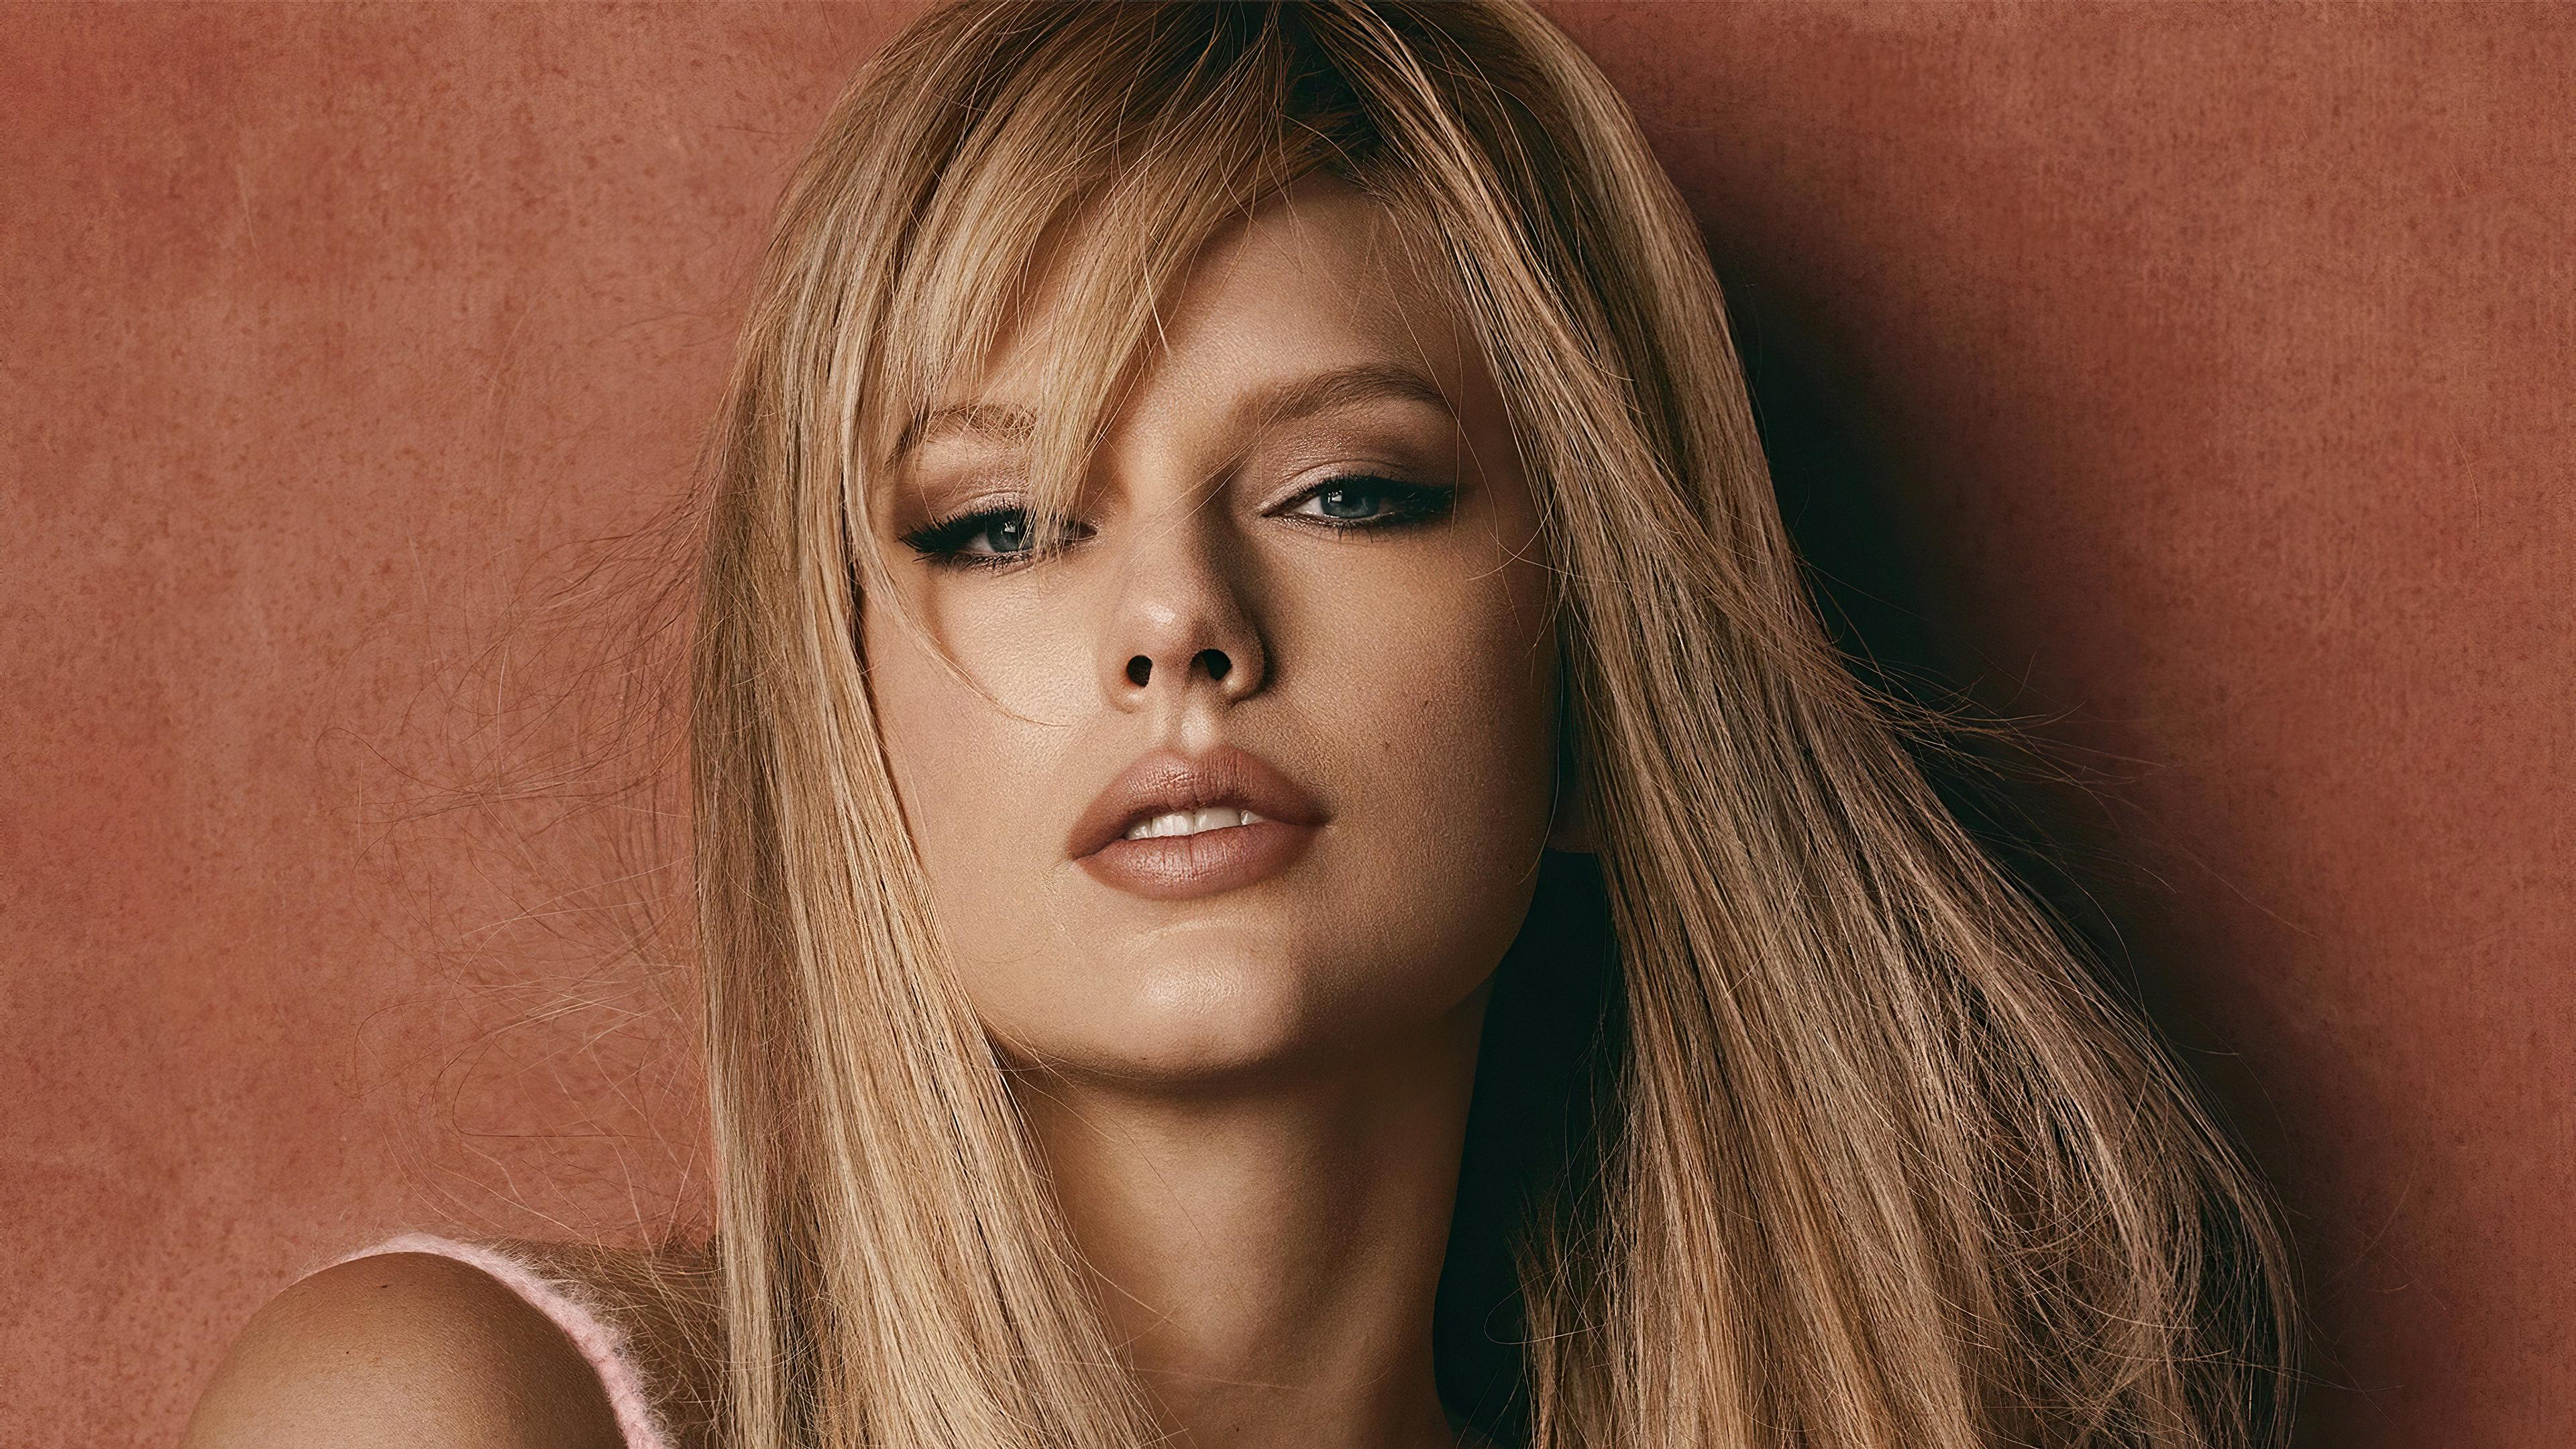 taylor swift 2020 wallpapers wallpaper cave taylor swift 2020 wallpapers